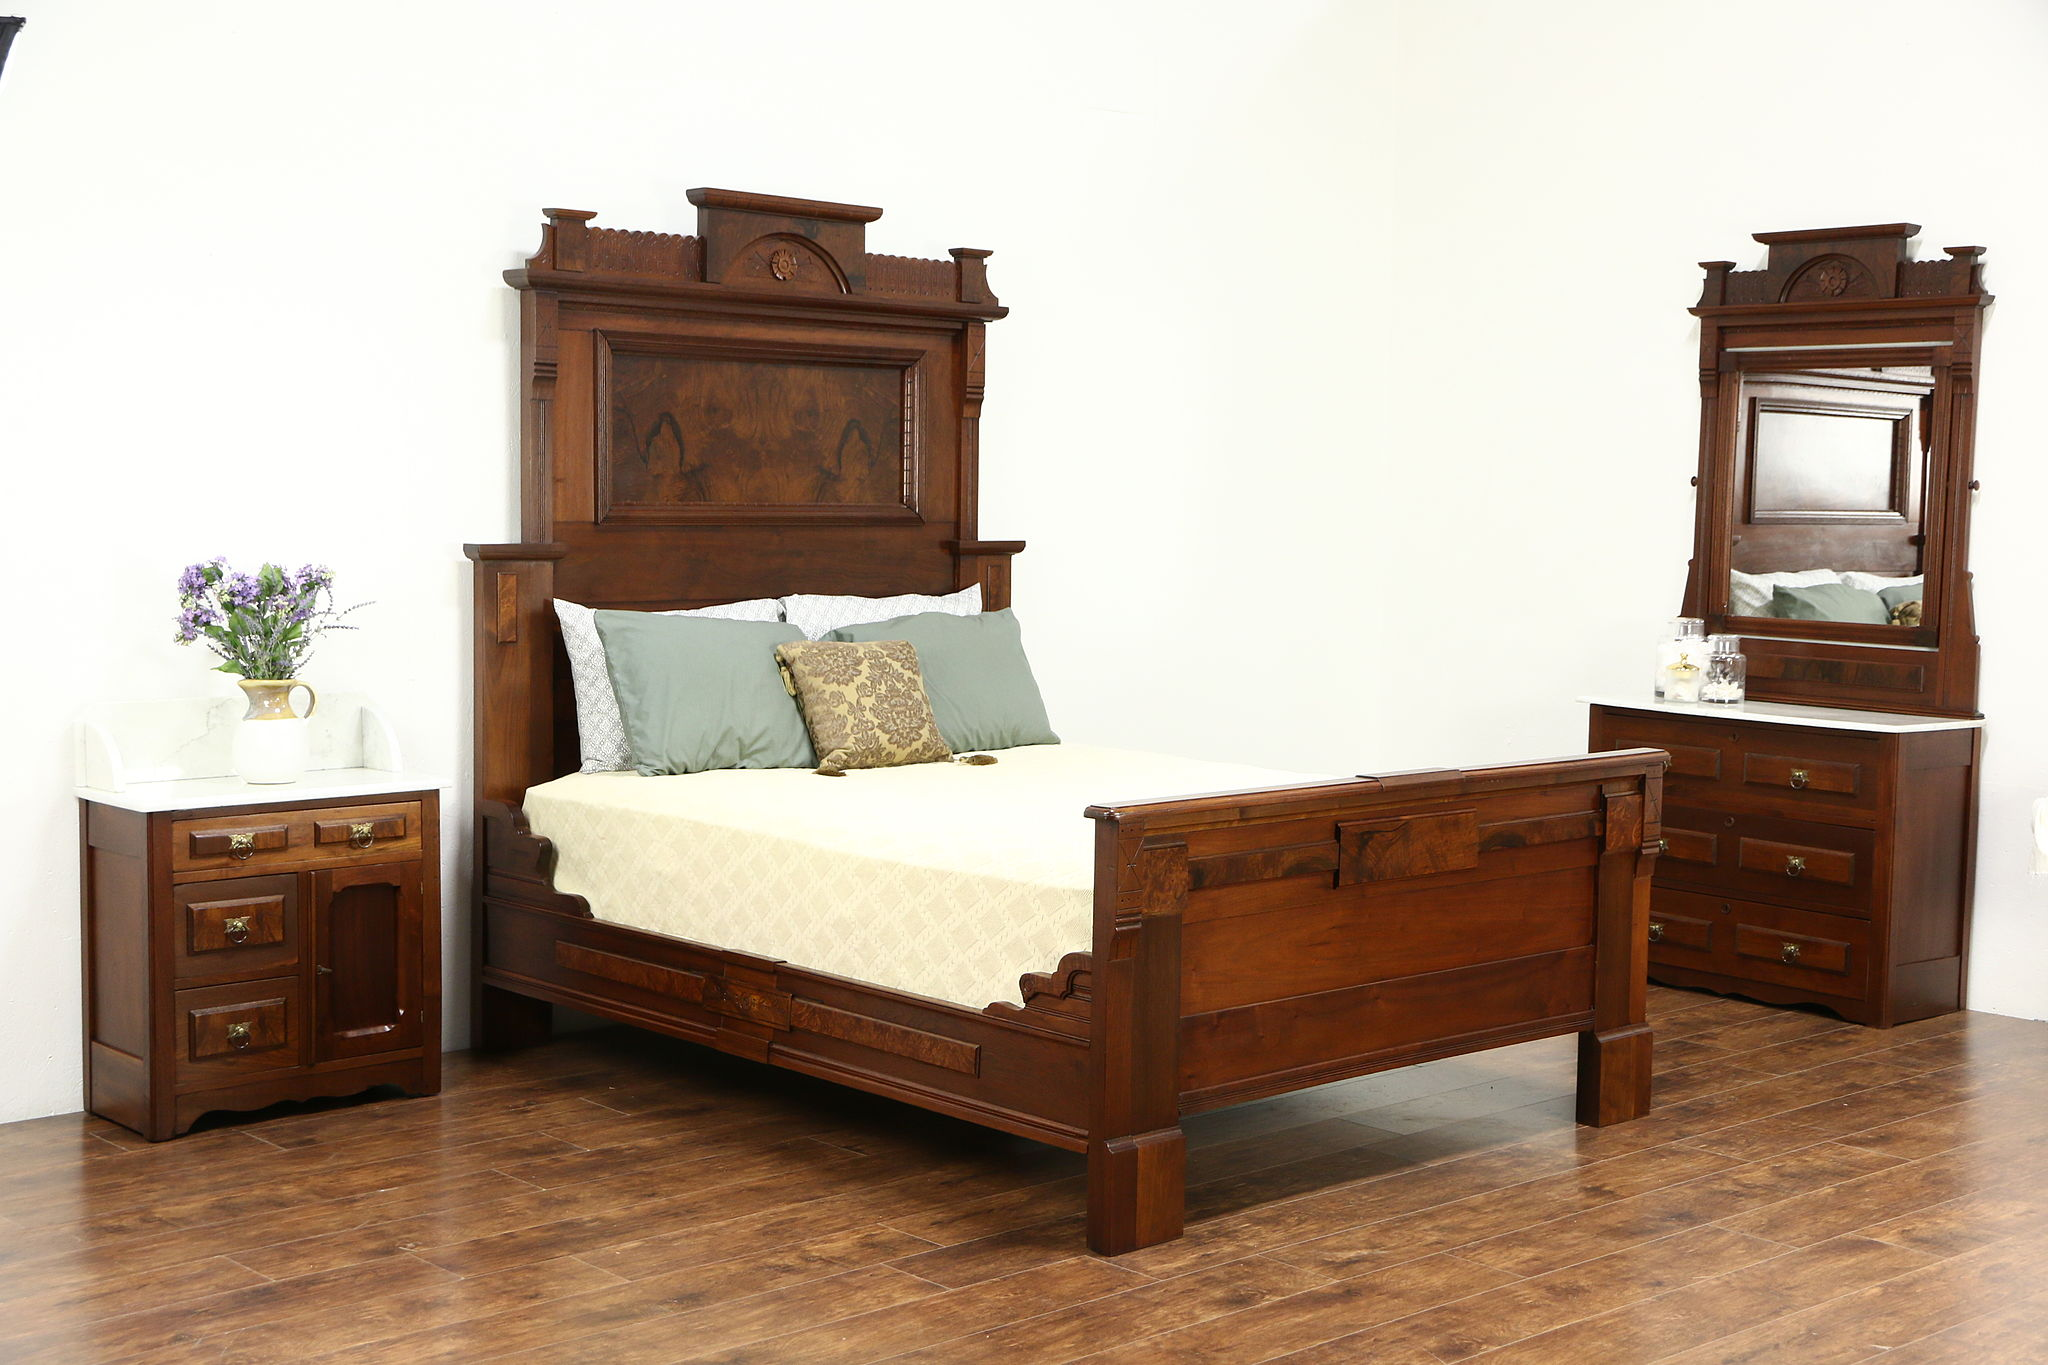 Sold Victorian 1880 Antique Walnut Queen Size Bed Only